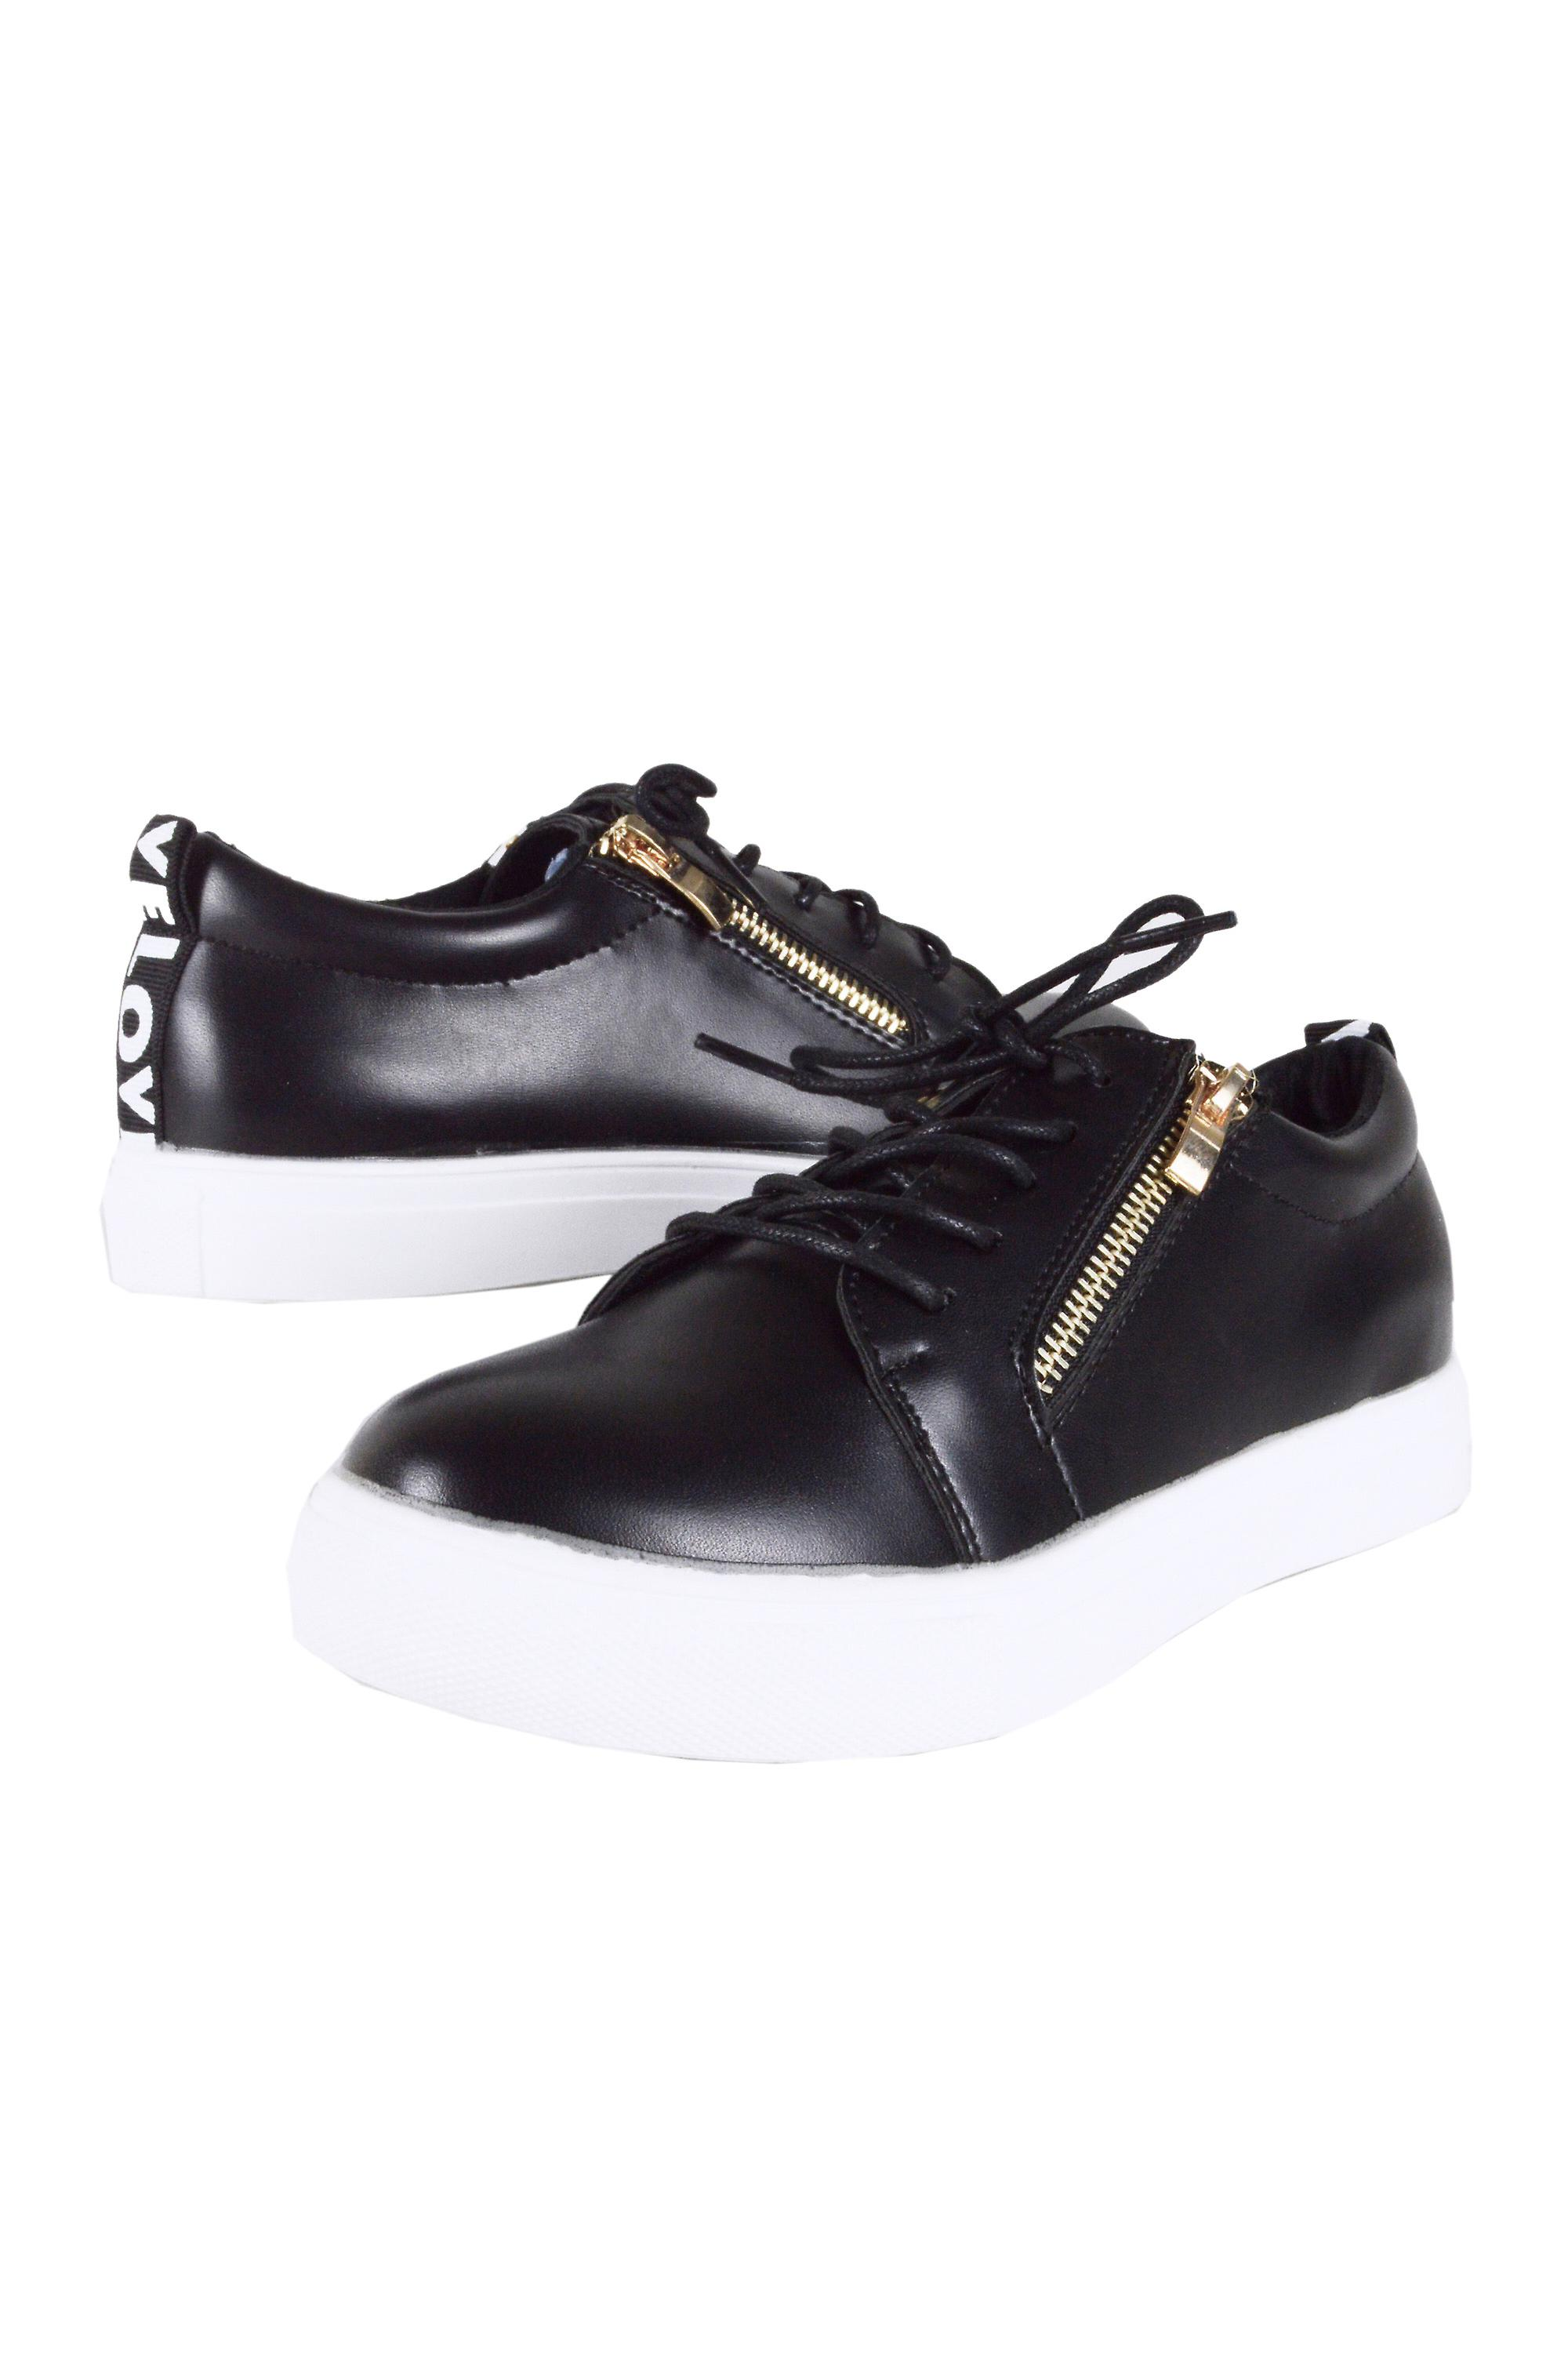 LMS Black Lace Up Trainer With Gold Zip and 'LOVE' Detail